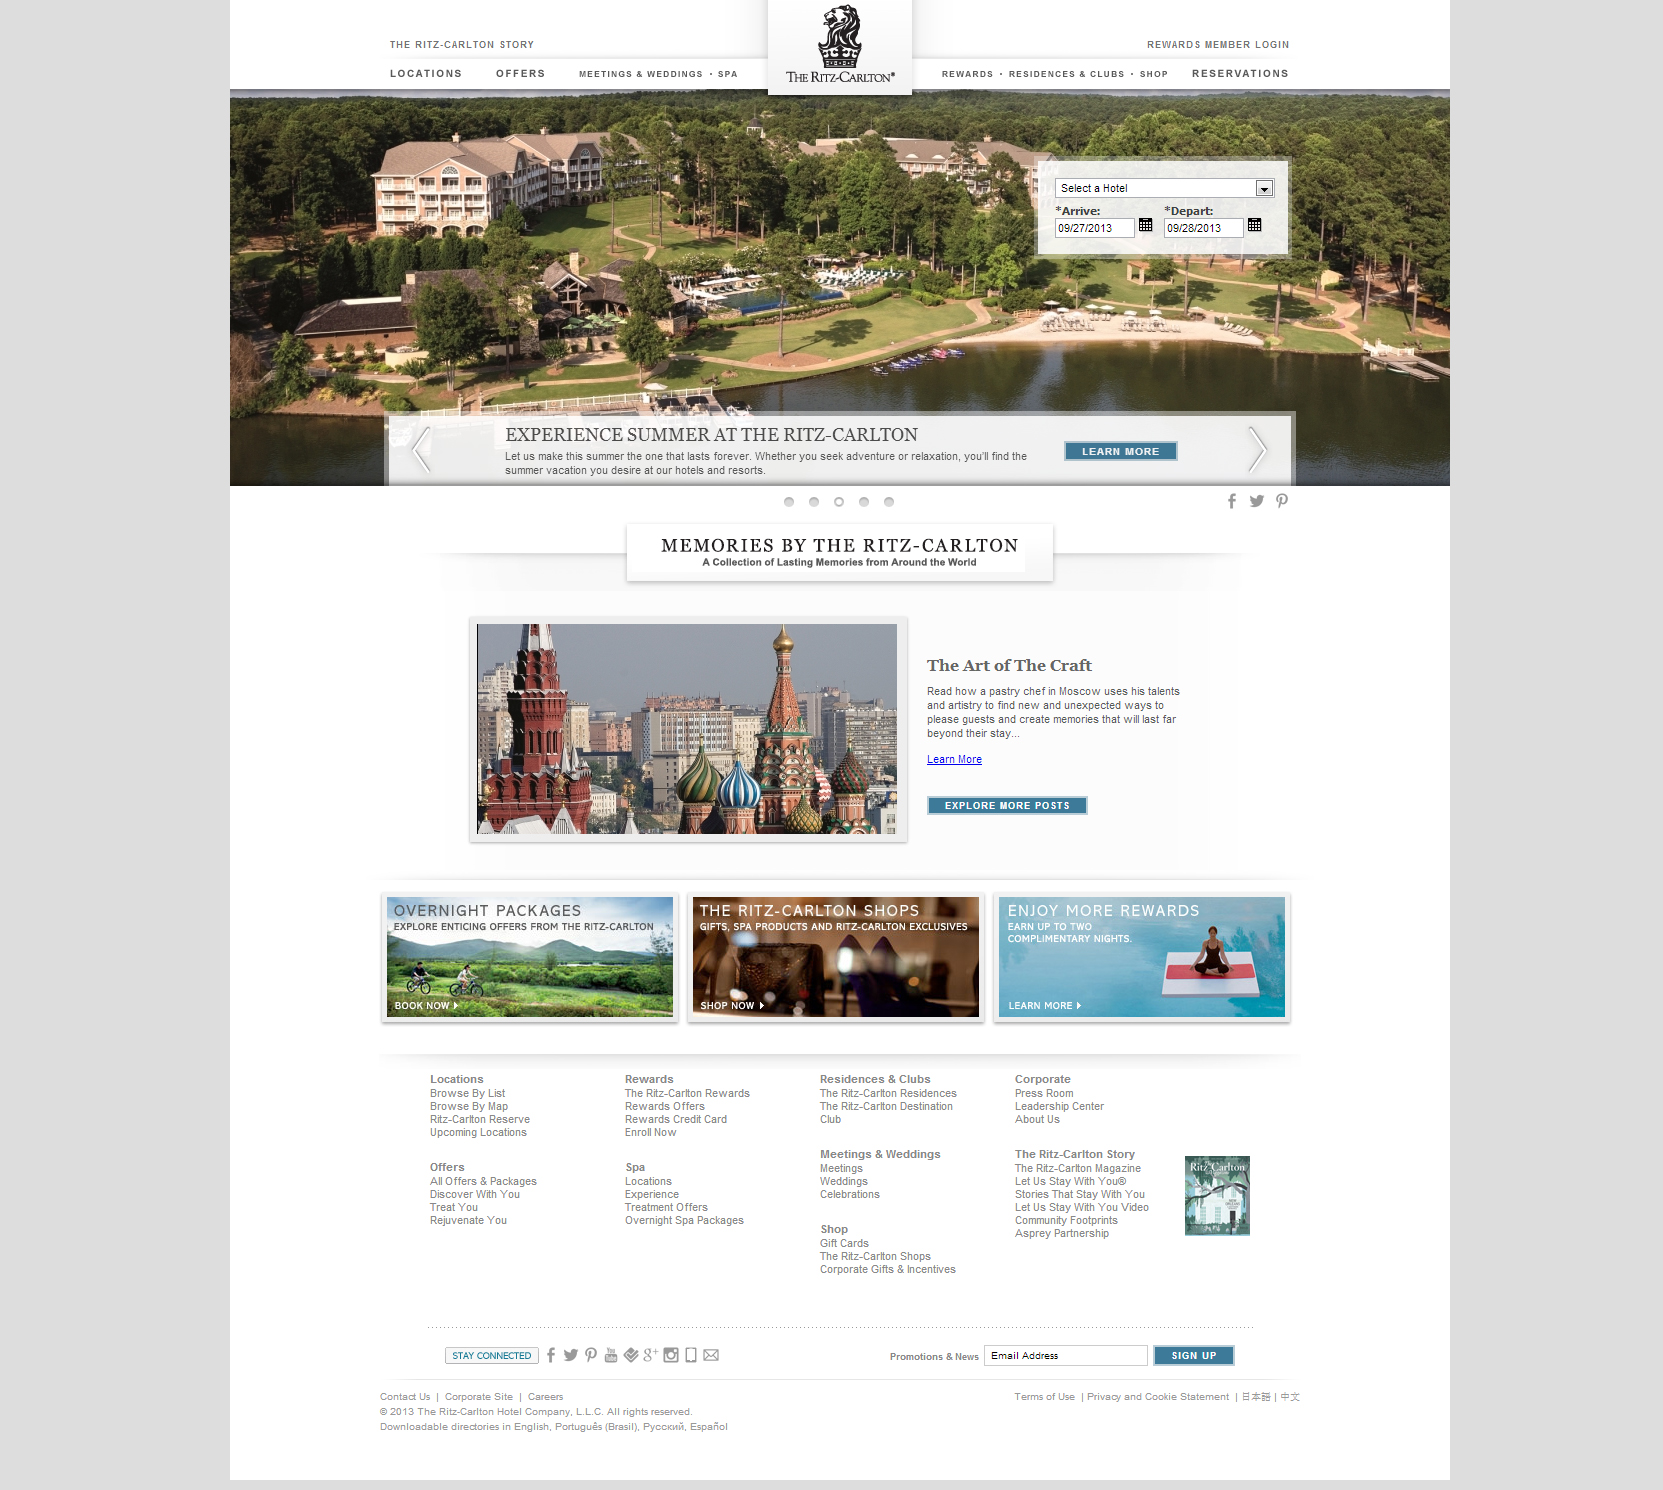 Website Inspiration - The Ritz Carlton Hotel